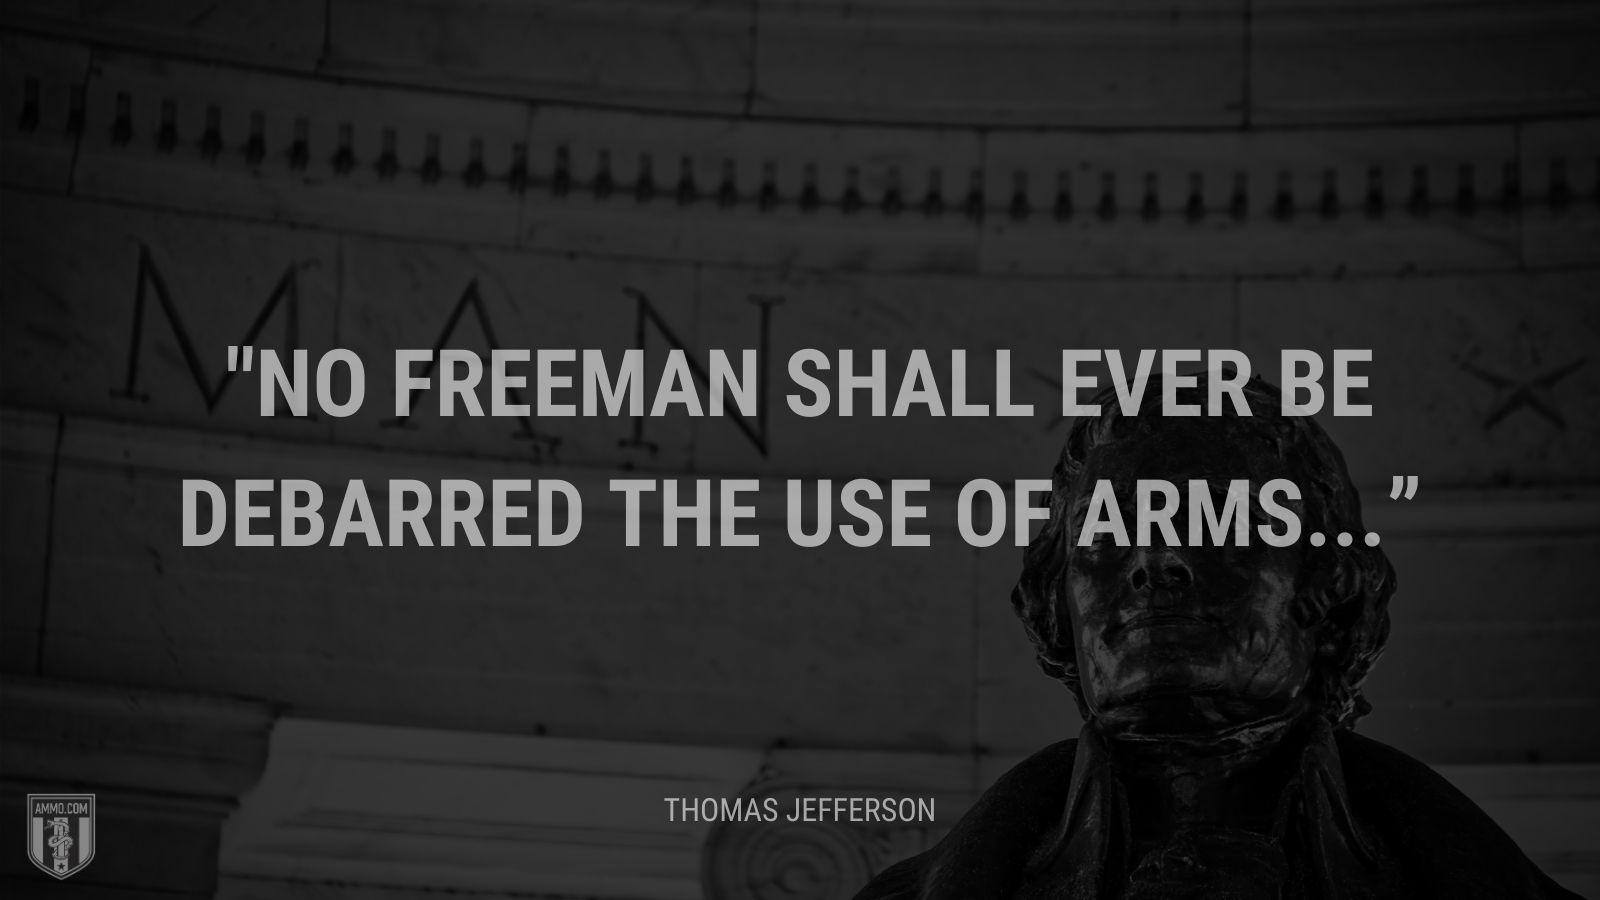 """No freeman shall ever be debarred the use of arms..."" - Thomas Jefferson"